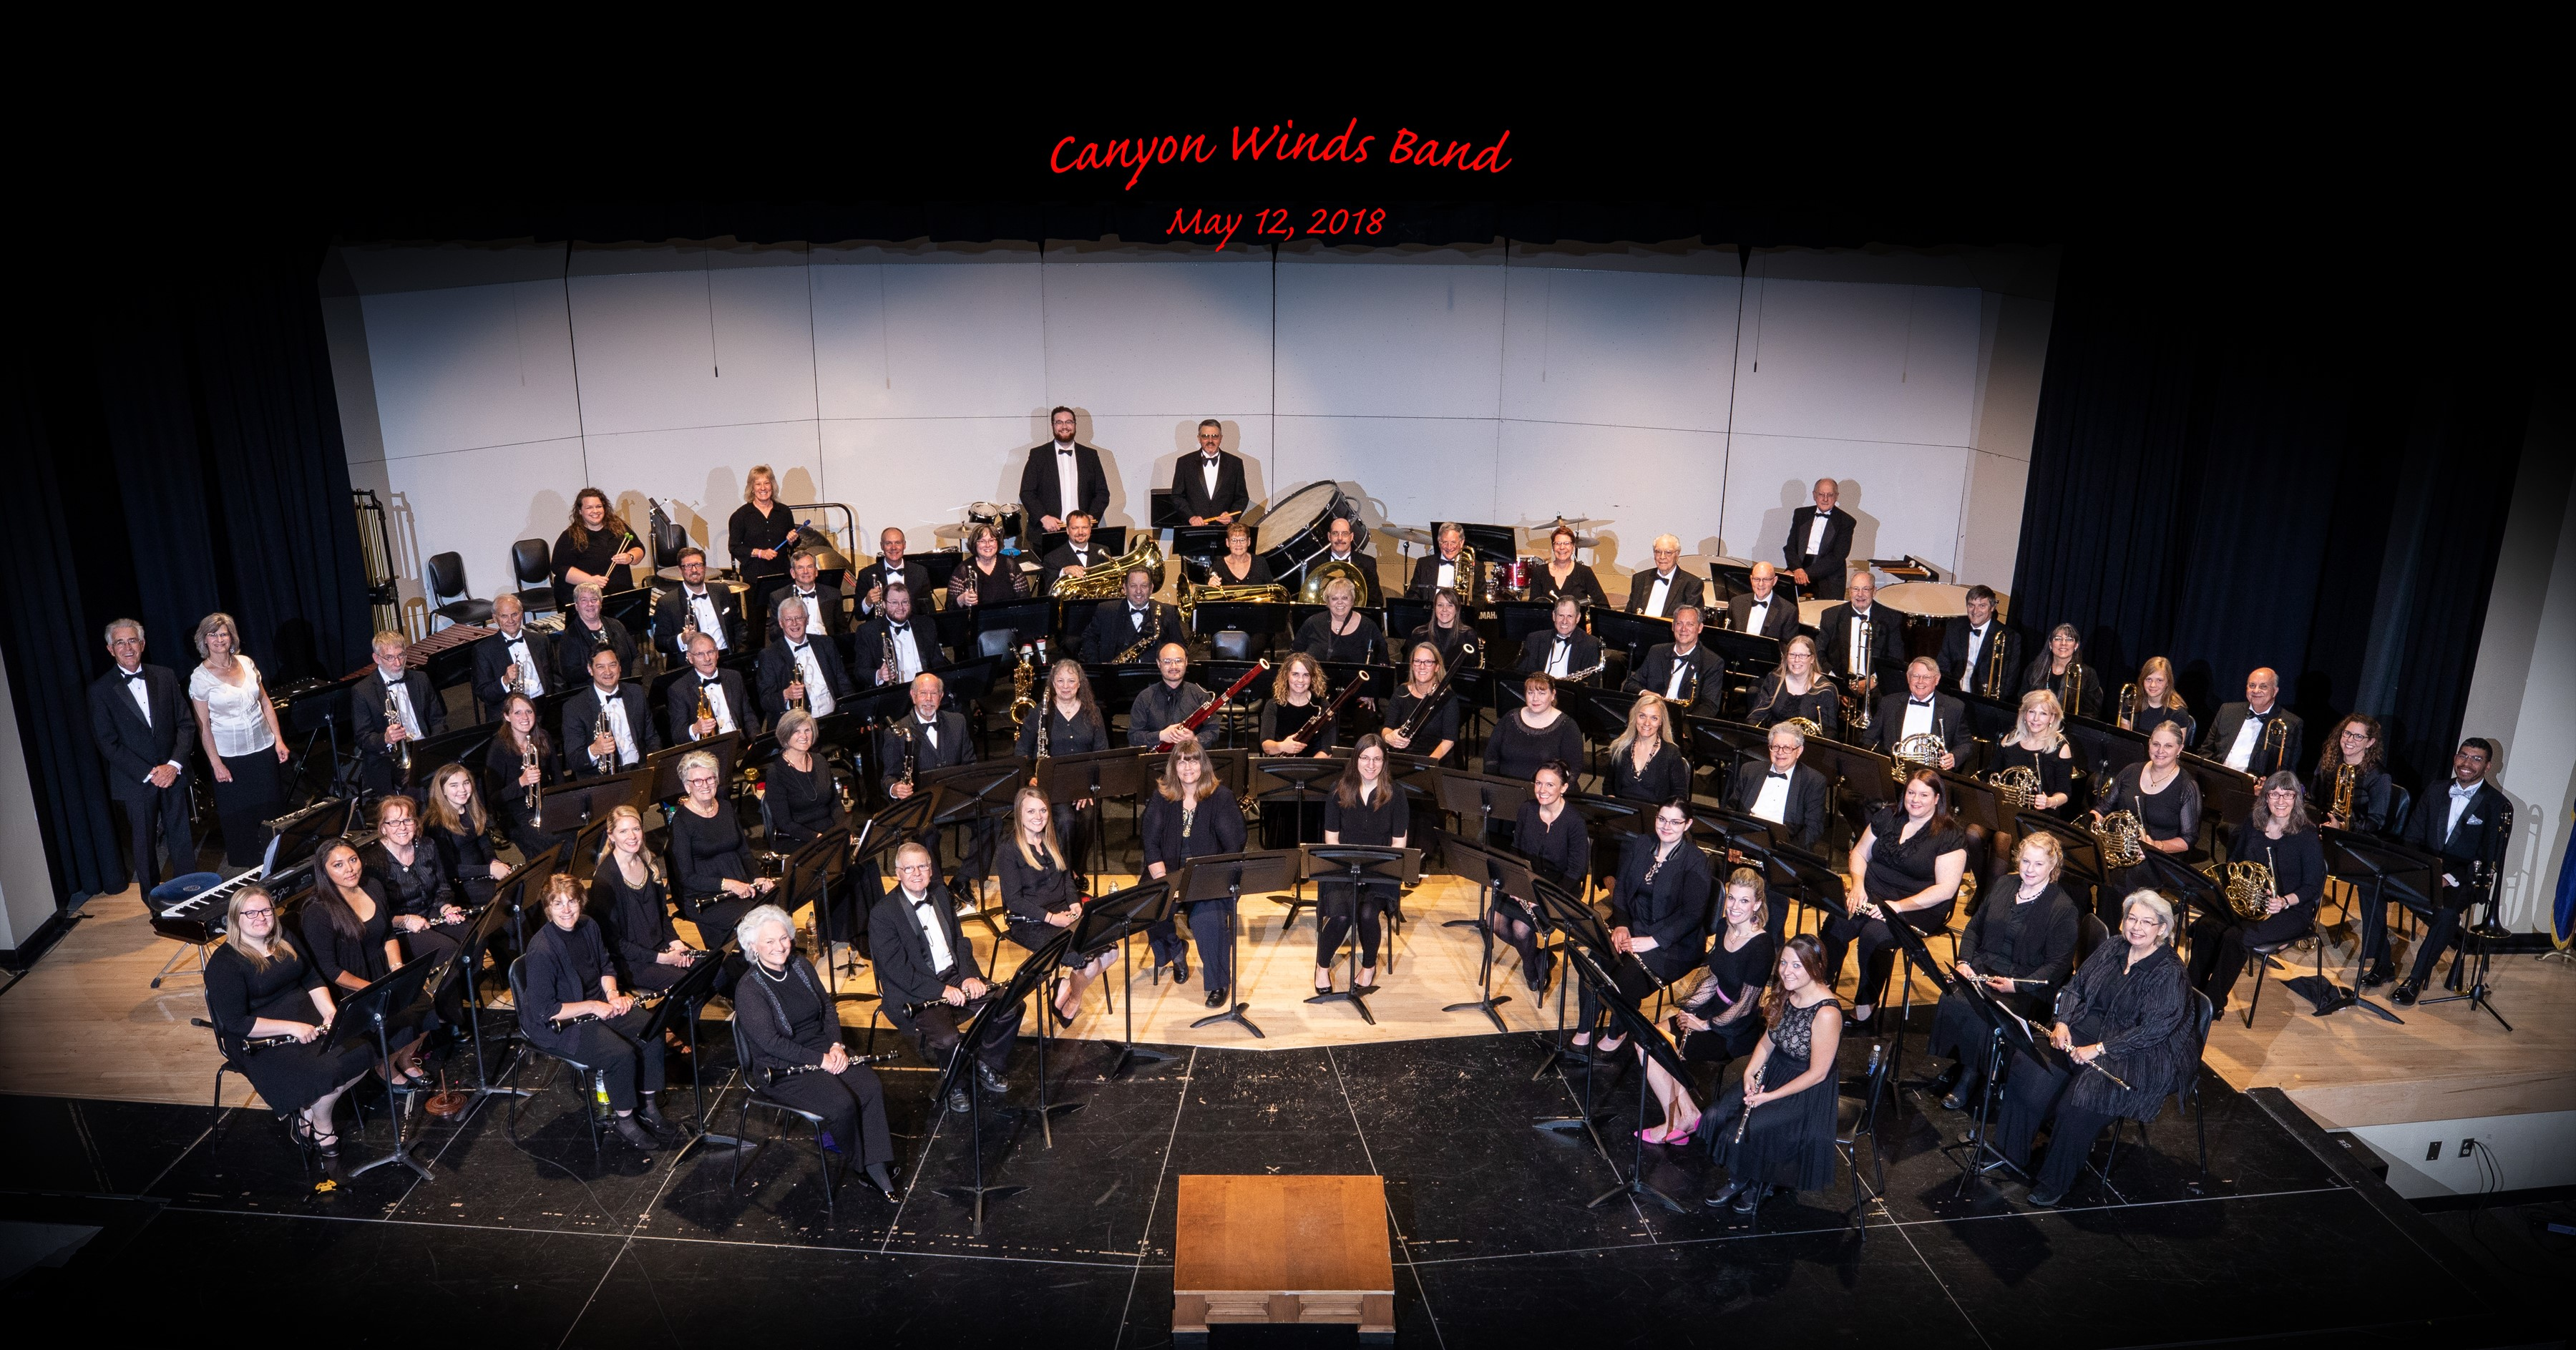 Canyon Winds Personnel from May 2018 Concert